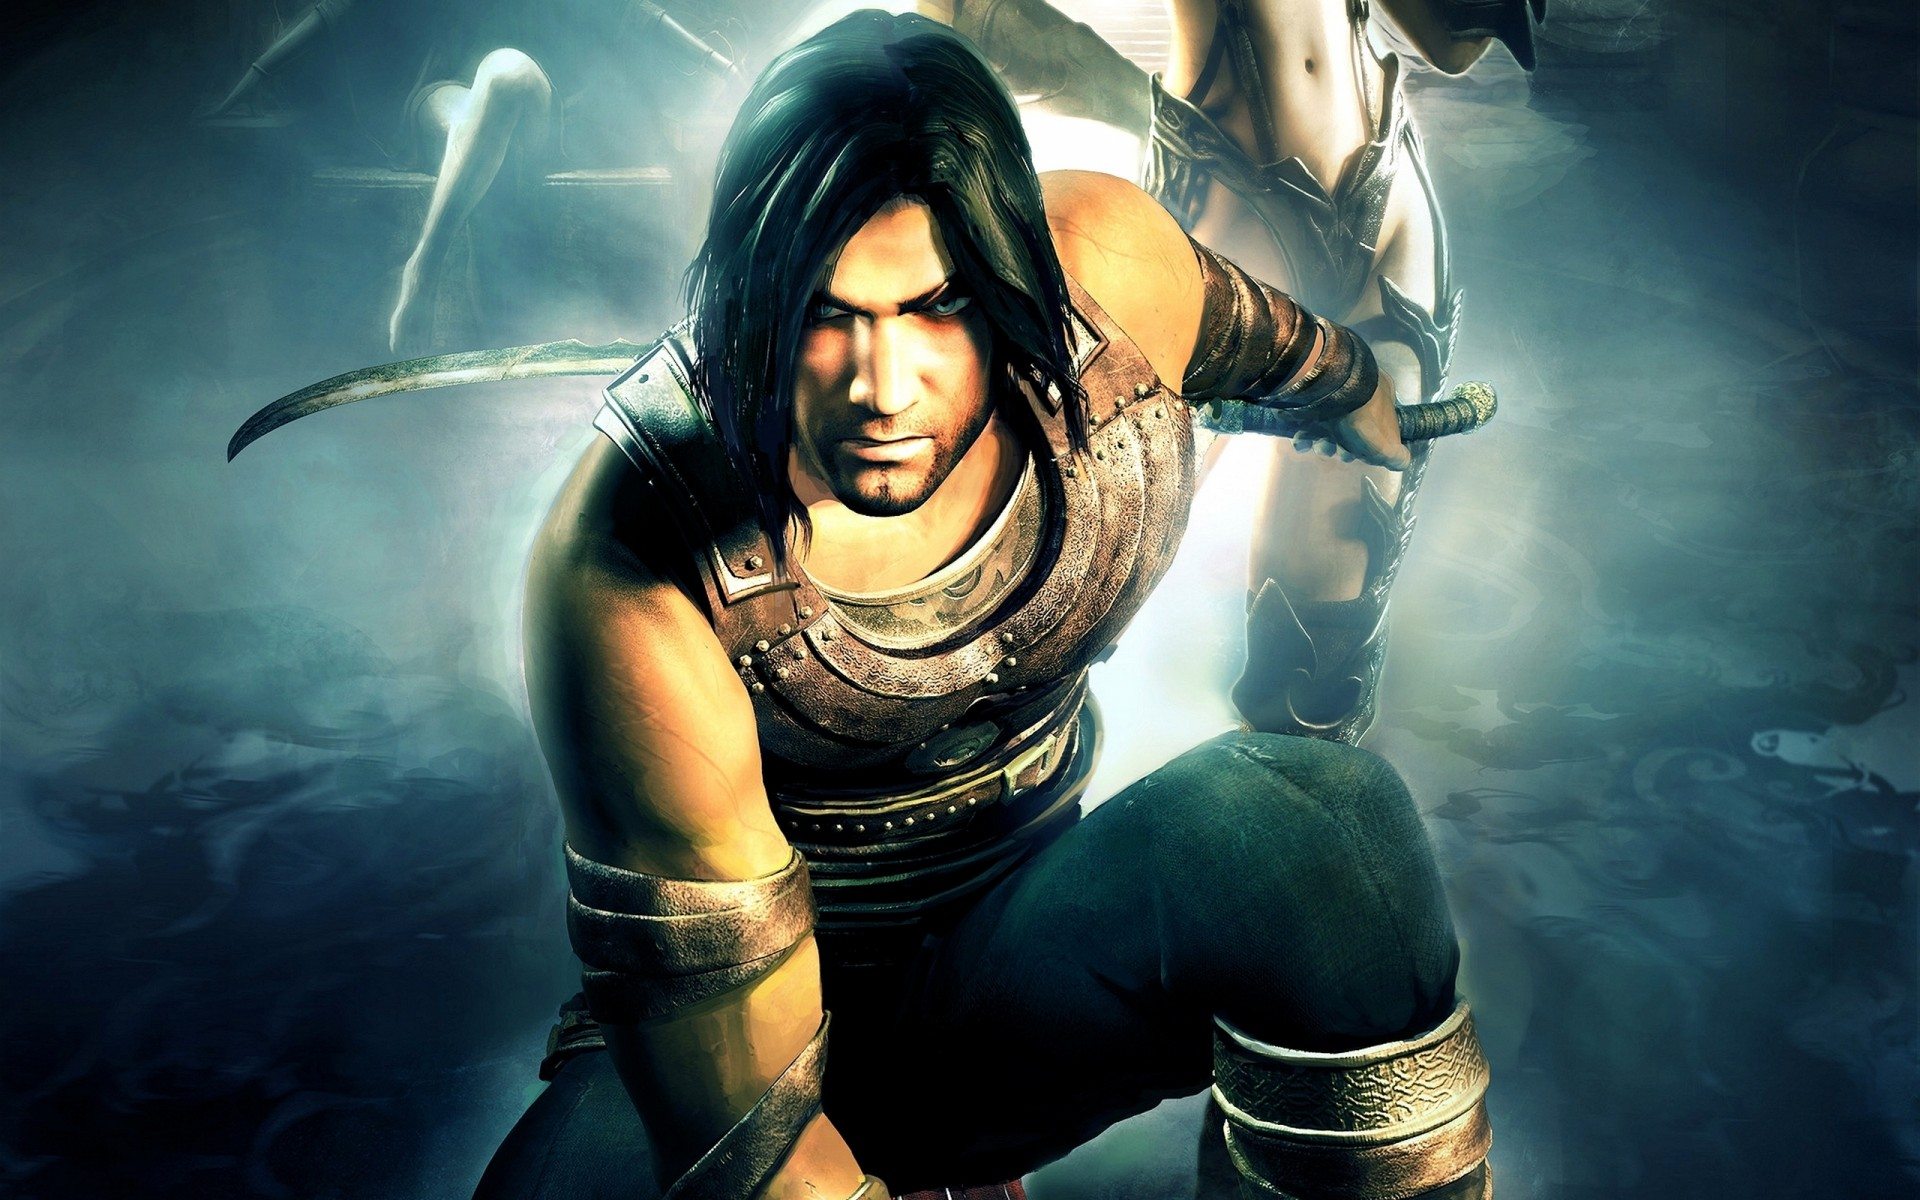 Арт к игре Prince of Persia: Warrior Within